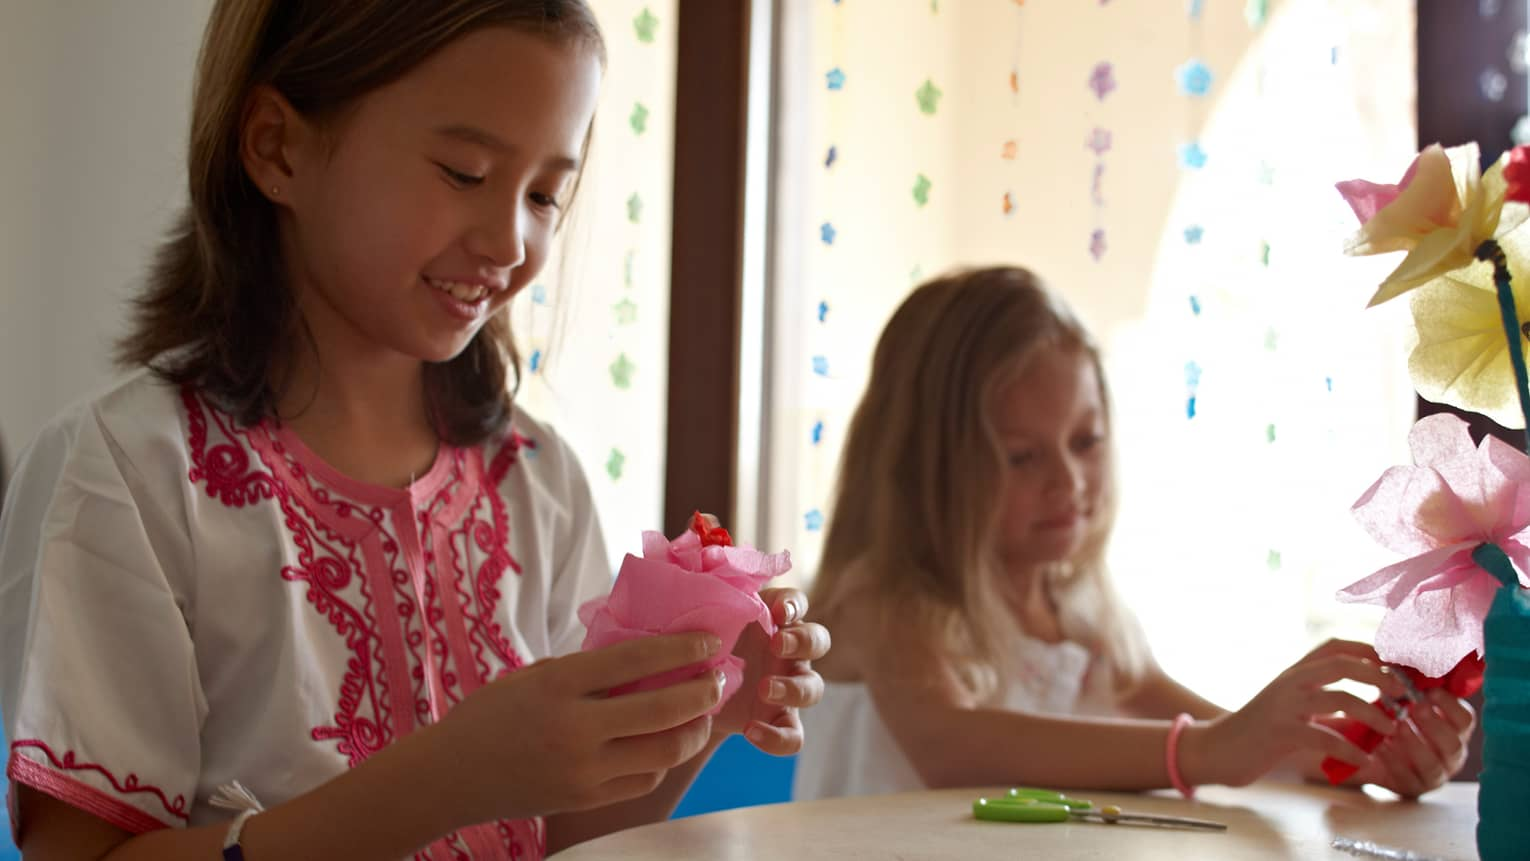 Two young girls at craft table with pink tissue paper